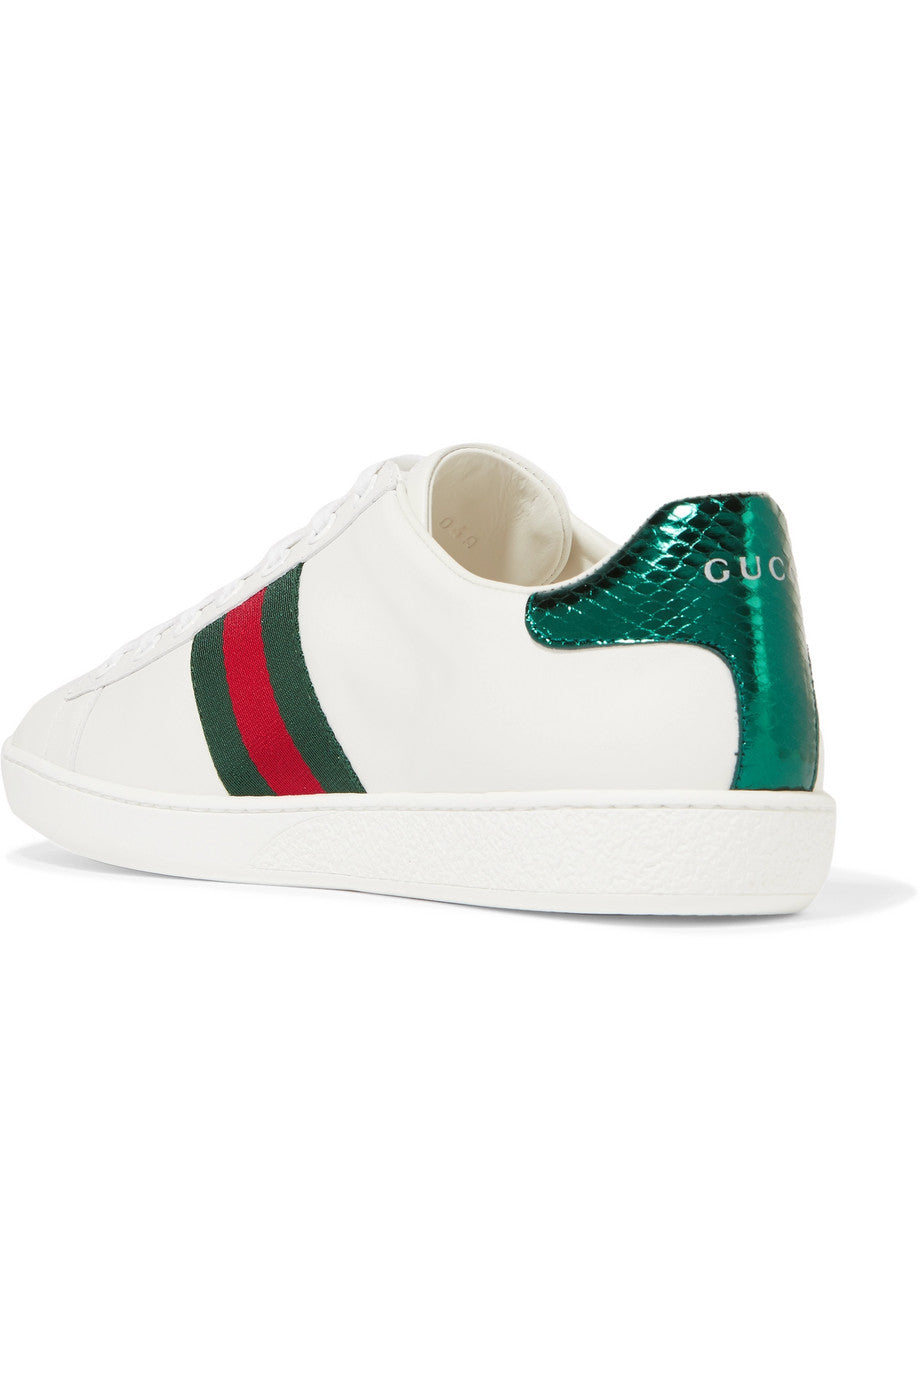 GUCCI-Ace Watersnake-trimmed